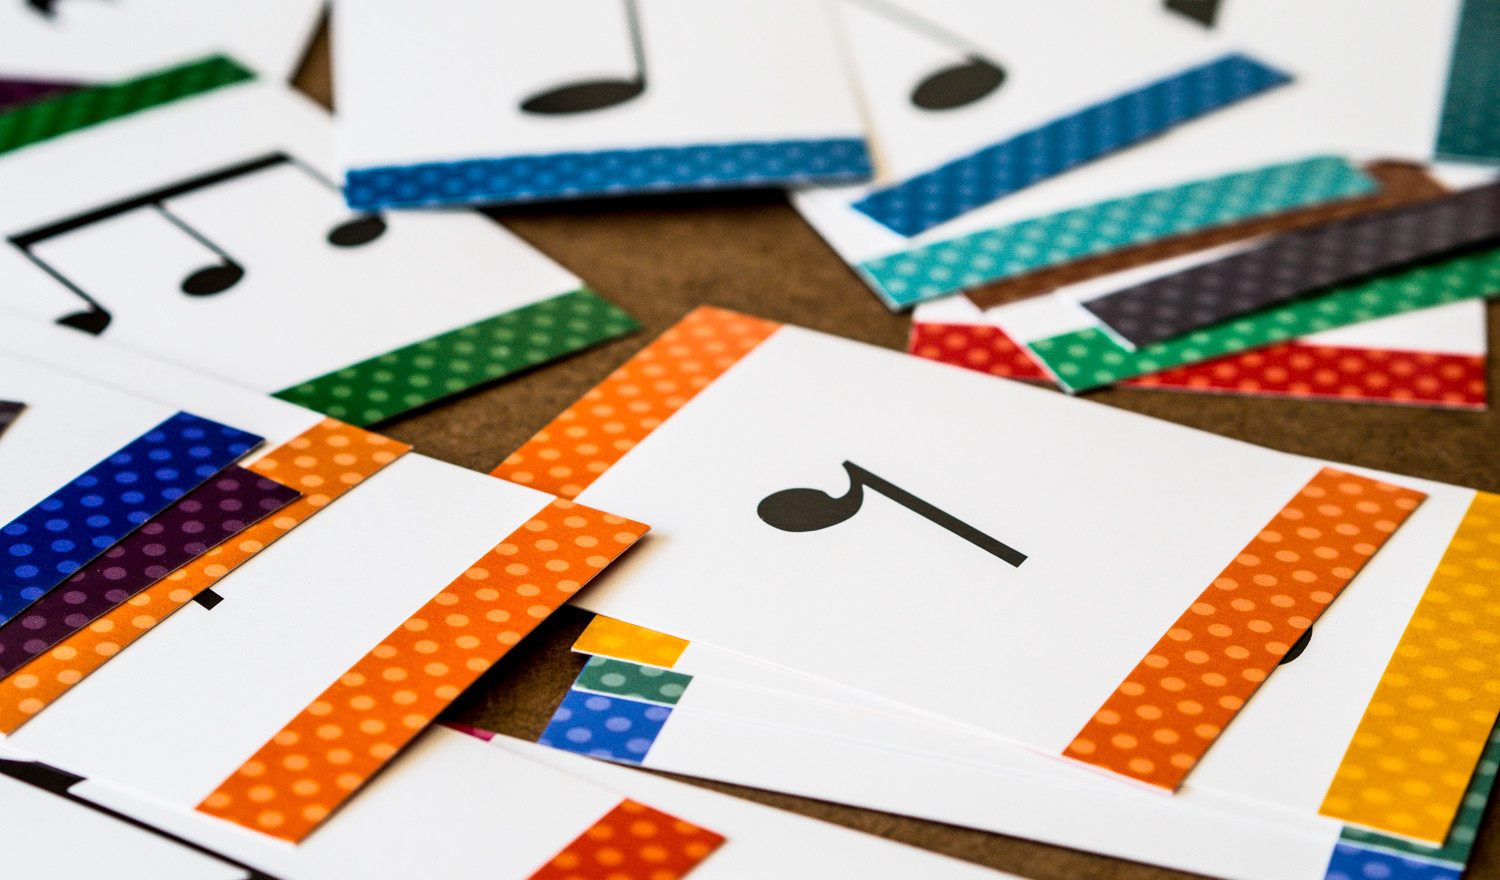 Rhythm cards - creative projects by Wendy